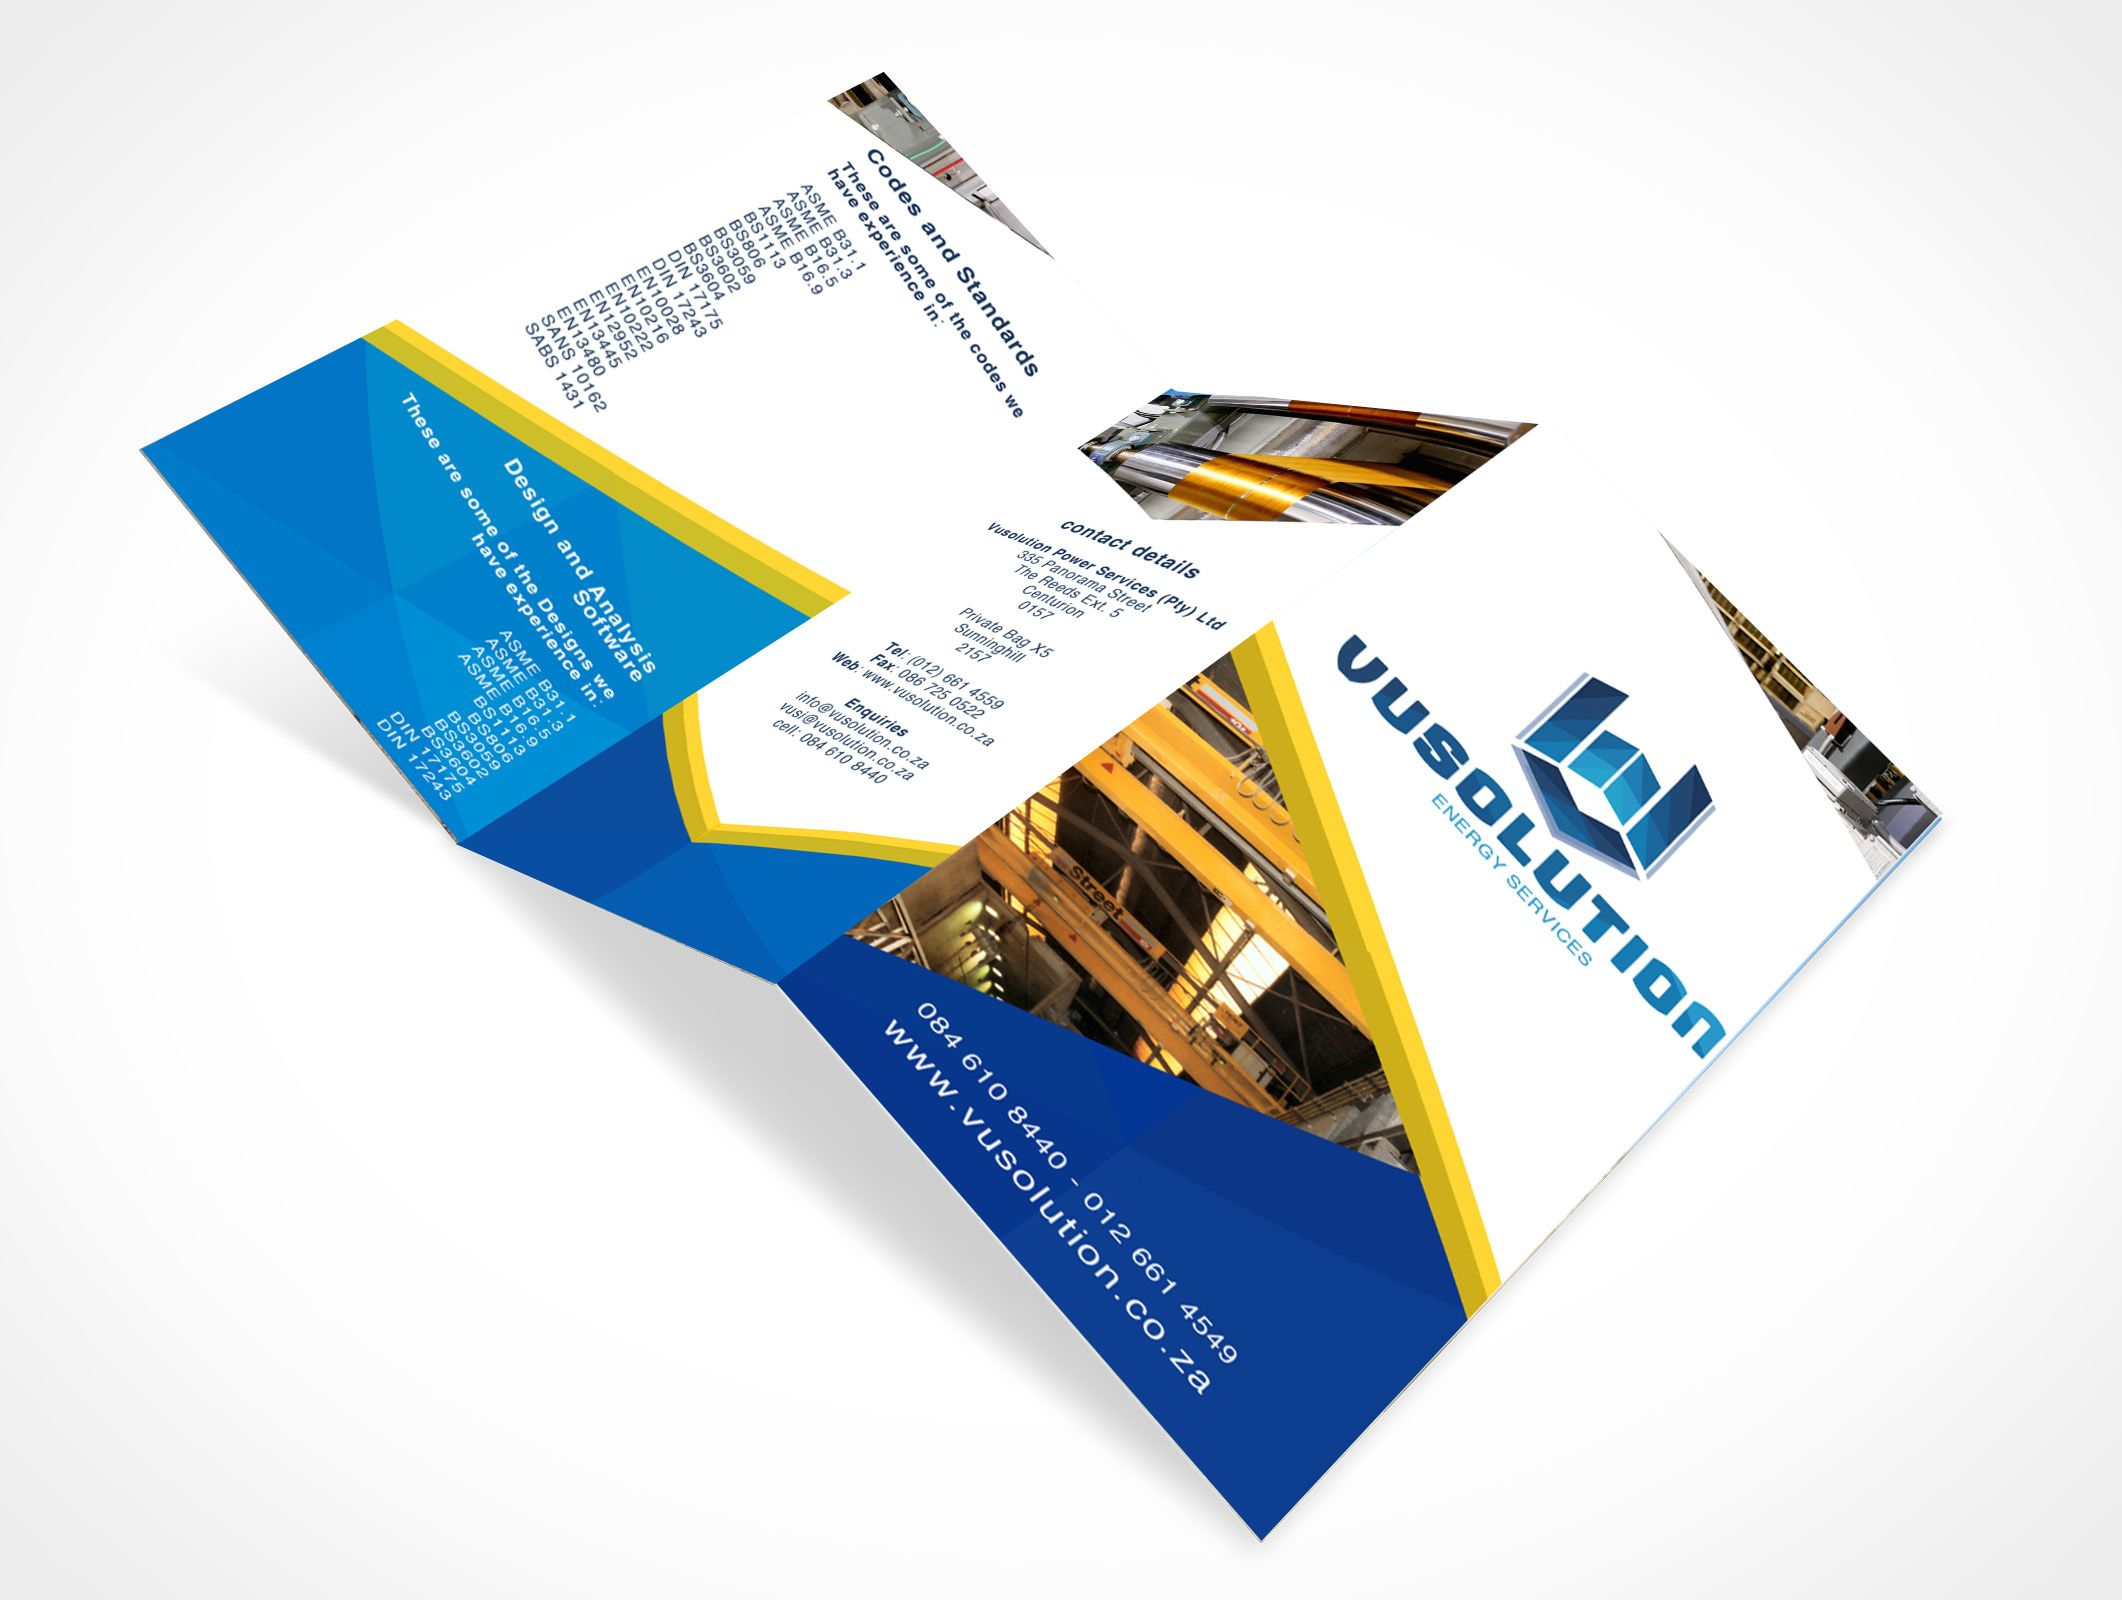 Vusolution Energy Services  Brochure Design  Mynkosi Branding